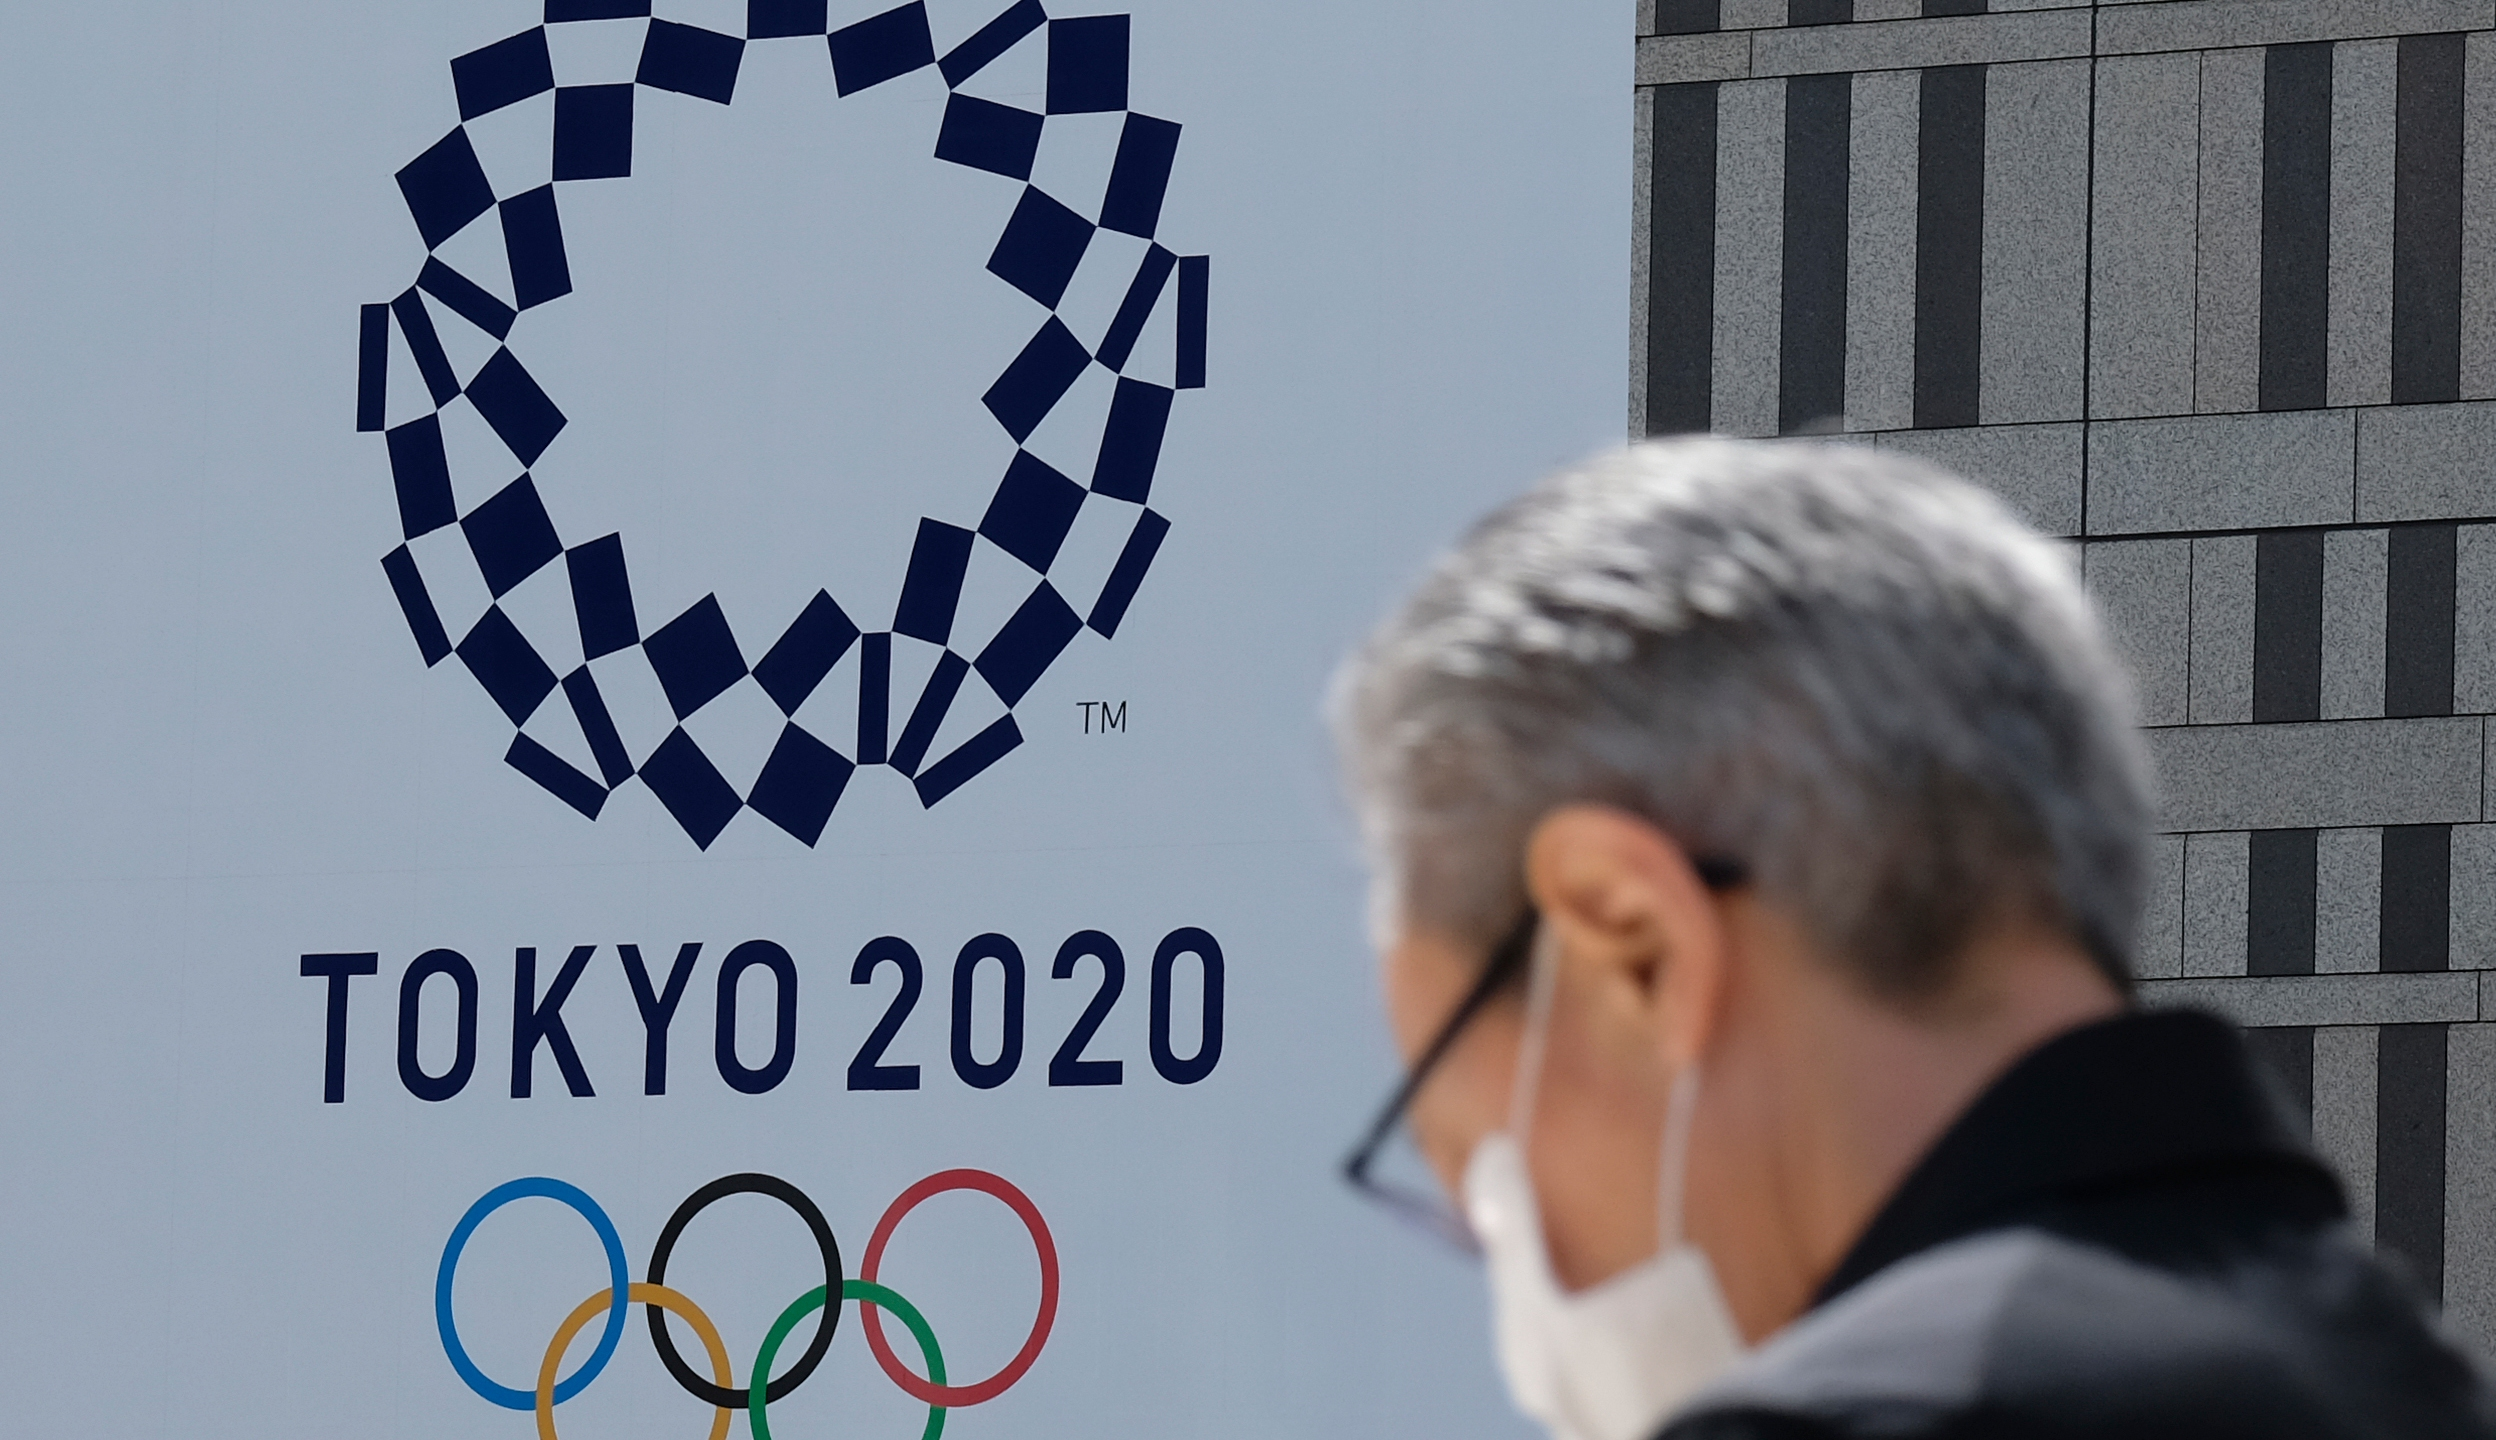 A man wearing a face mask walks before the logo of the Tokyo 2020 Olympic Games displayed on the Tokyo Metropolitan Government building in Tokyo on March 24, 2020. - The International Olympic Committee came under pressure to speed up its decision about postponing the Tokyo Games on March 24 as athletes criticised the four-week deadline and the United States joined calls to delay the competition. (Photo by Kazuhiro NOGI / AFP) (Photo by KAZUHIRO NOGI/AFP via Getty Images)